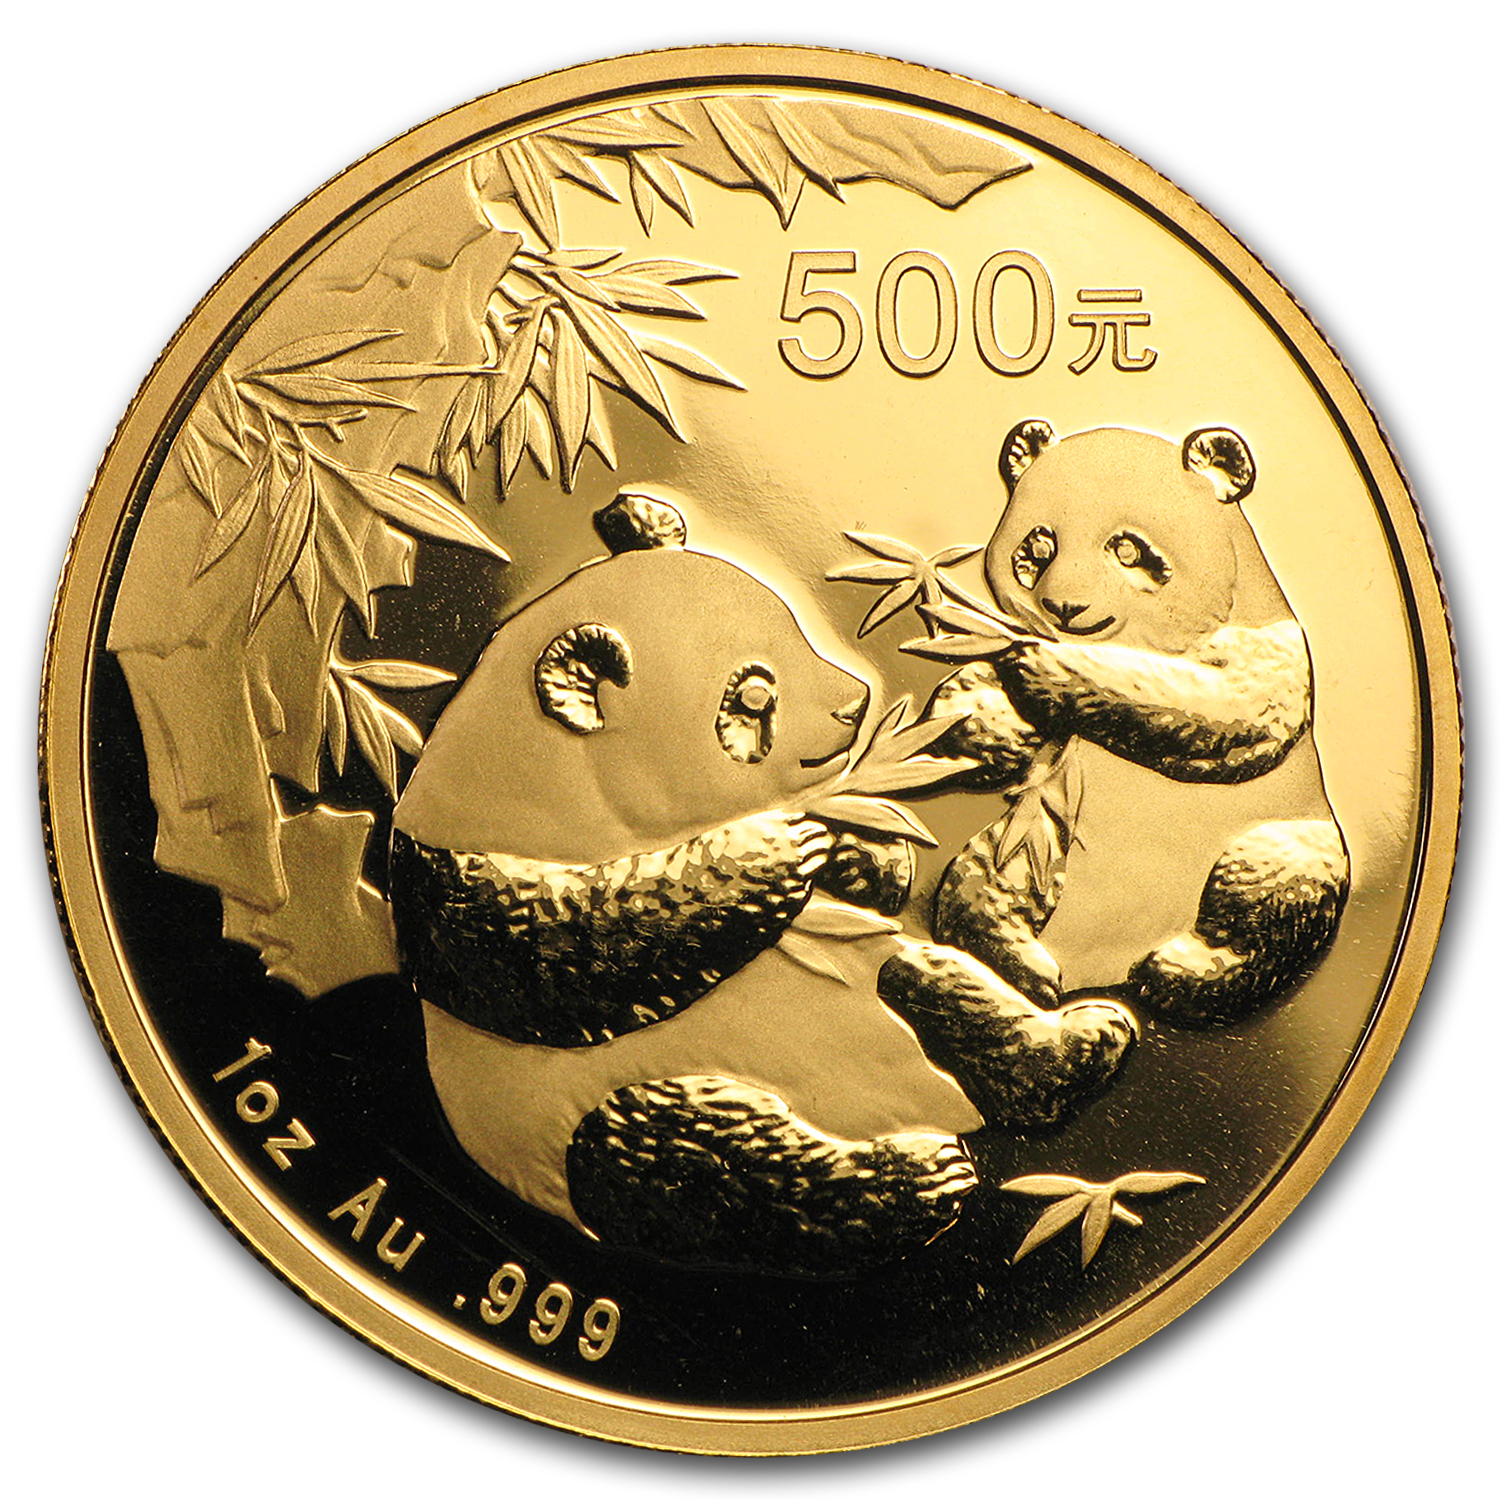 2006 China 1 oz Gold Panda BU (Not Sealed)